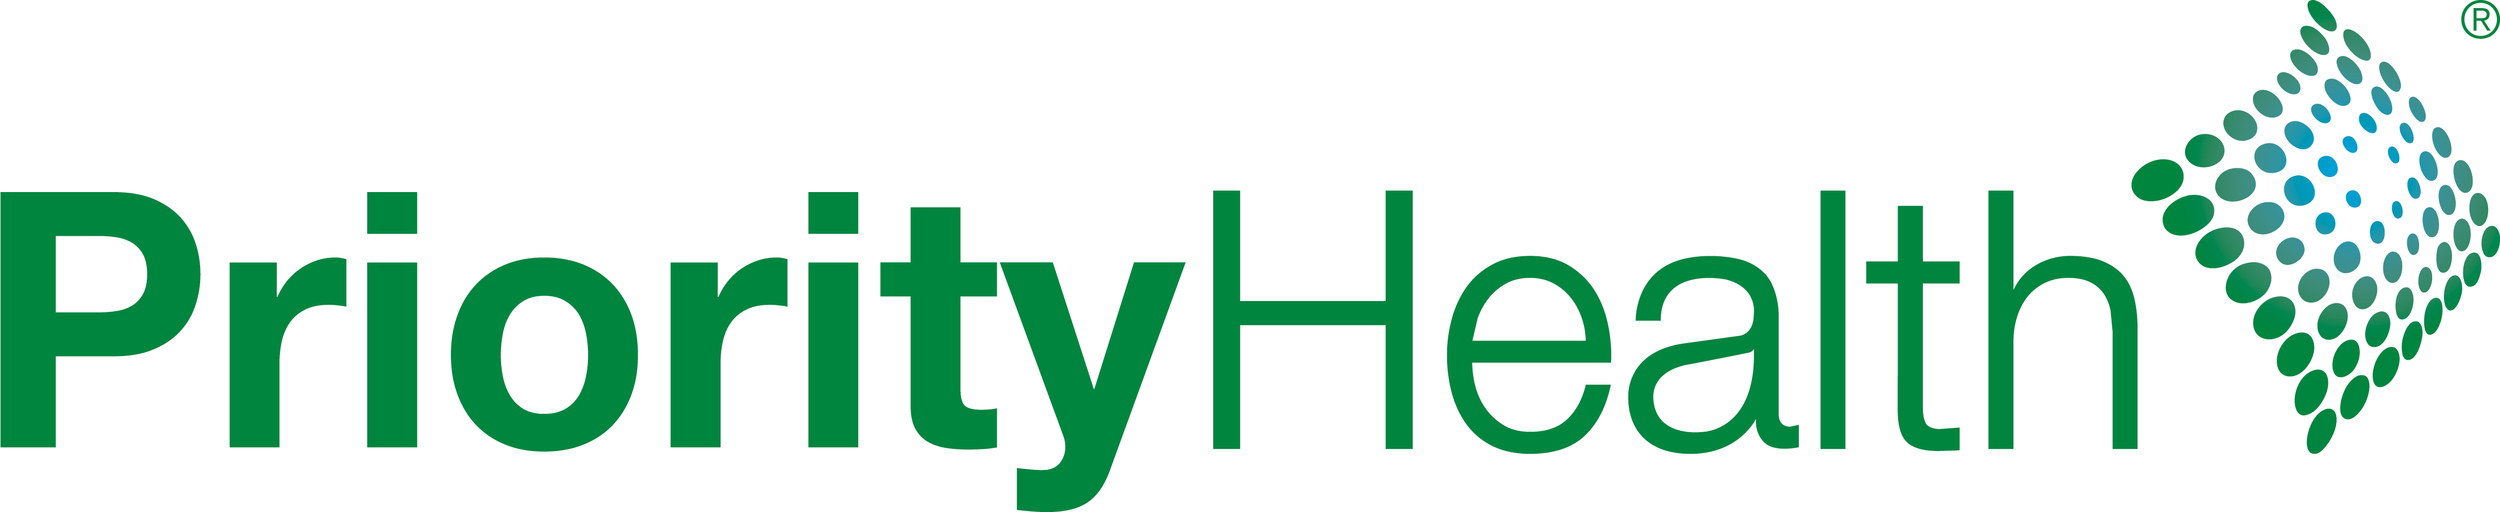 PriorityHealth logo_500x80_web.png